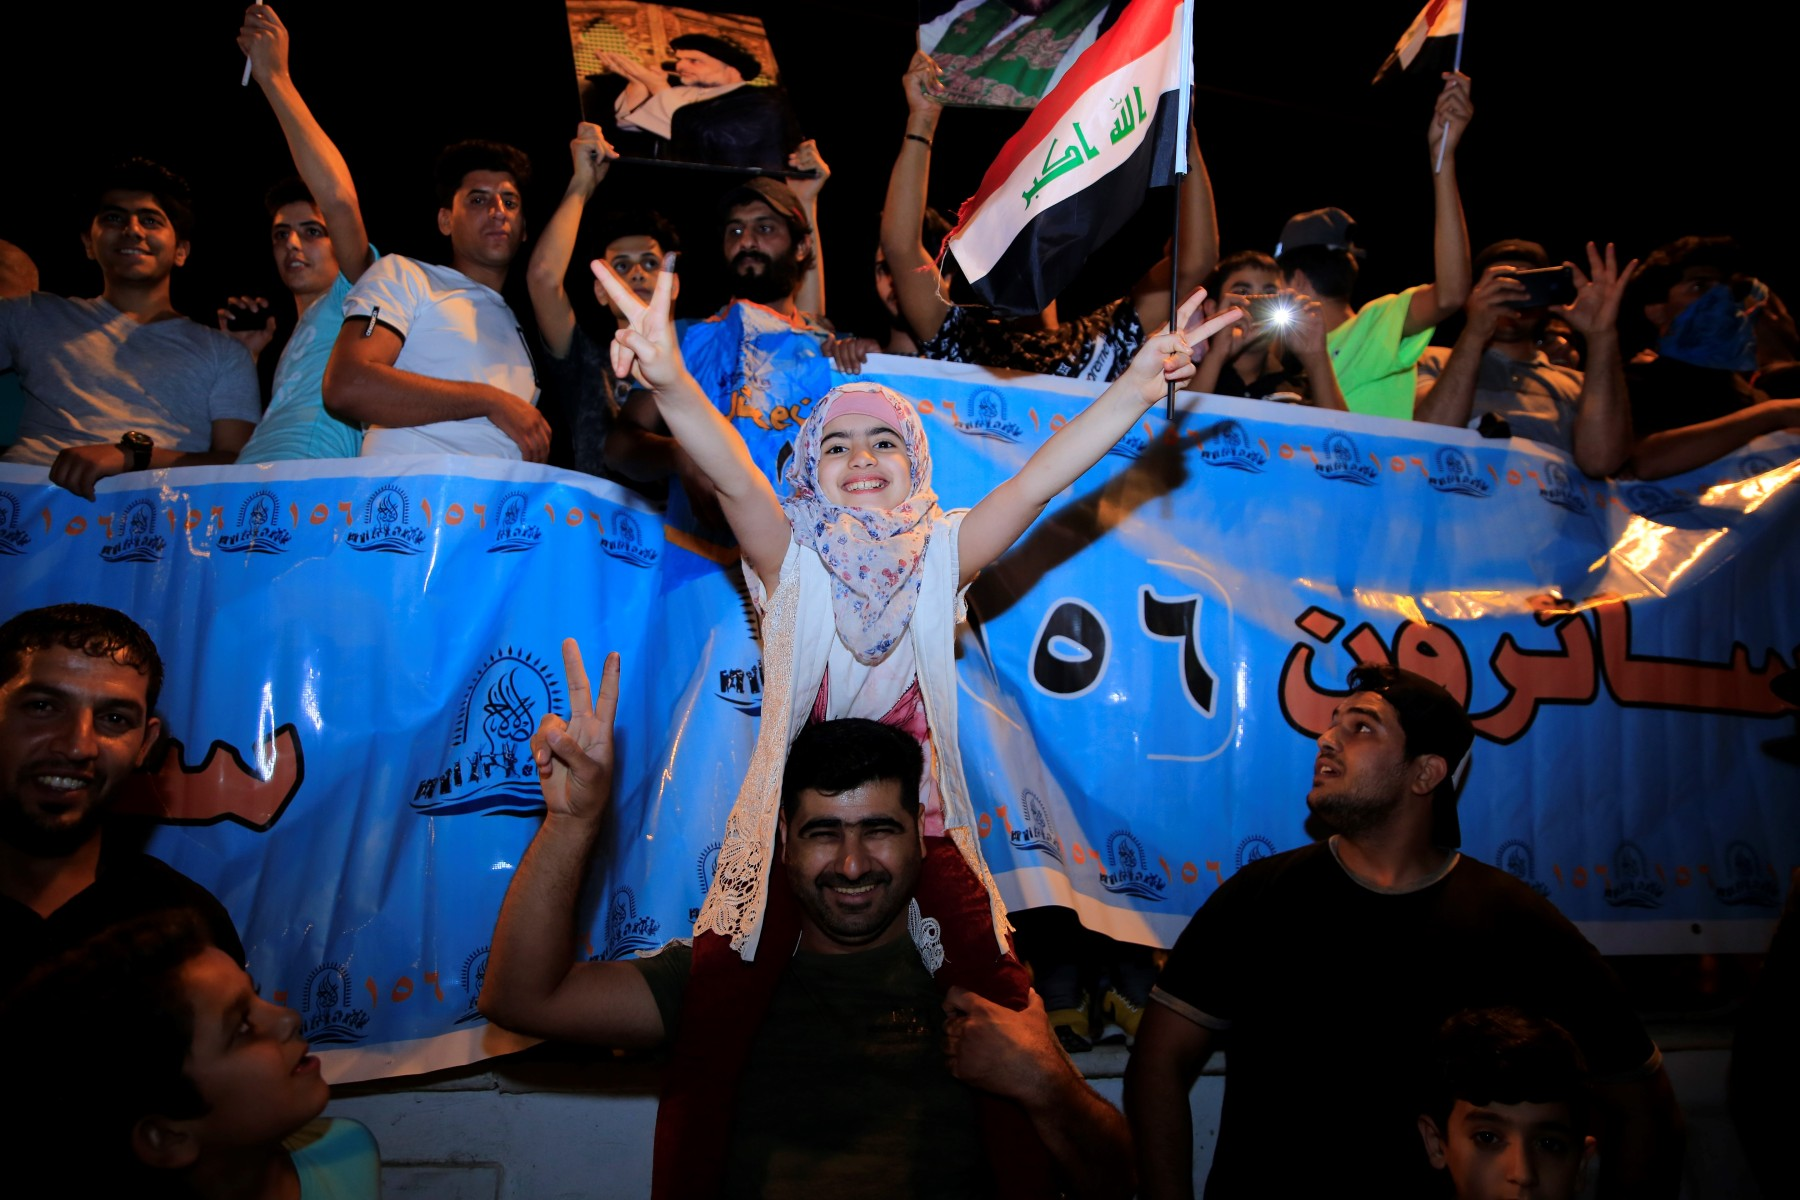 Supporters of Iraqi Shiite cleric Moqtada al-Sadr celebrate the results of the parliamentary election at the Tahrir Square, Baghdad, Iraq.  (Murtadha Sudani/Anadolu Agency/Getty Images)